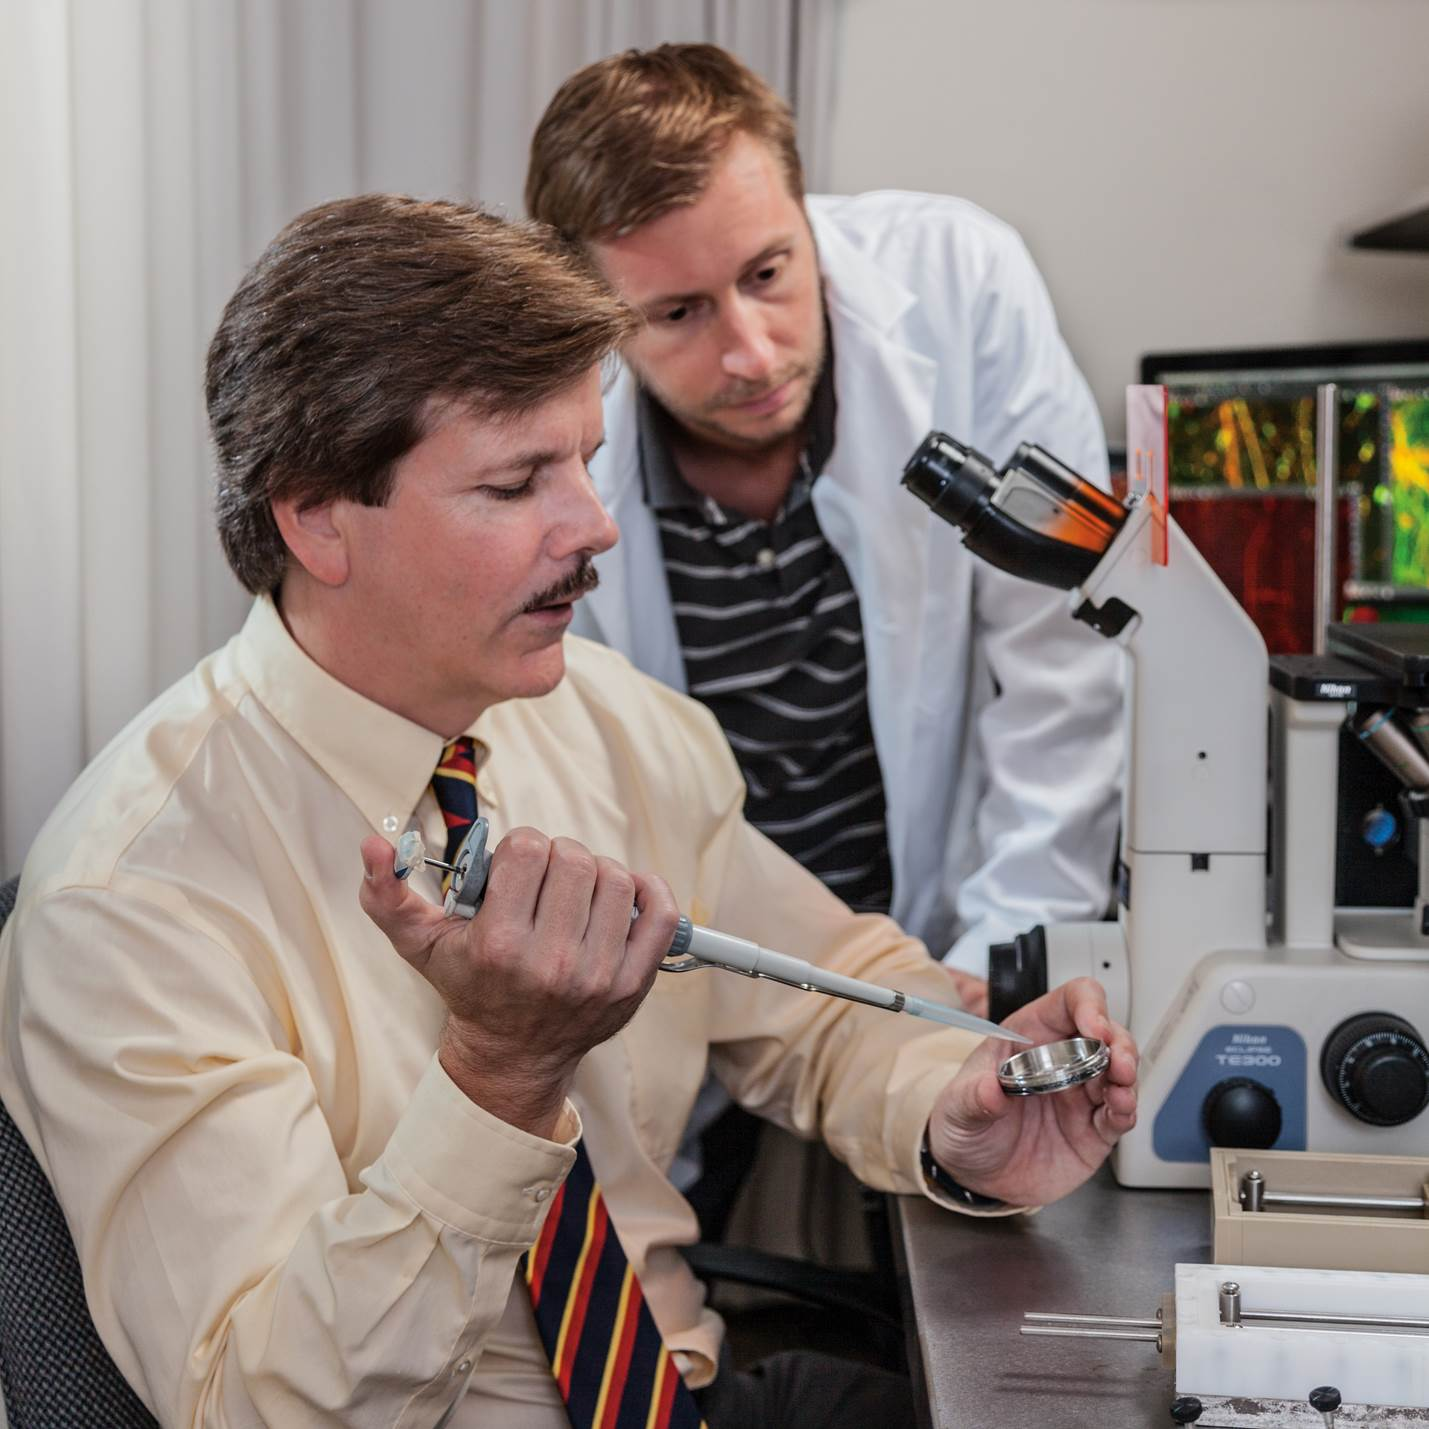 Douglas Smith, shown here with research specialist Andrew Jaye, investigates telltale changes of axonal injury in patients with mild concussion.